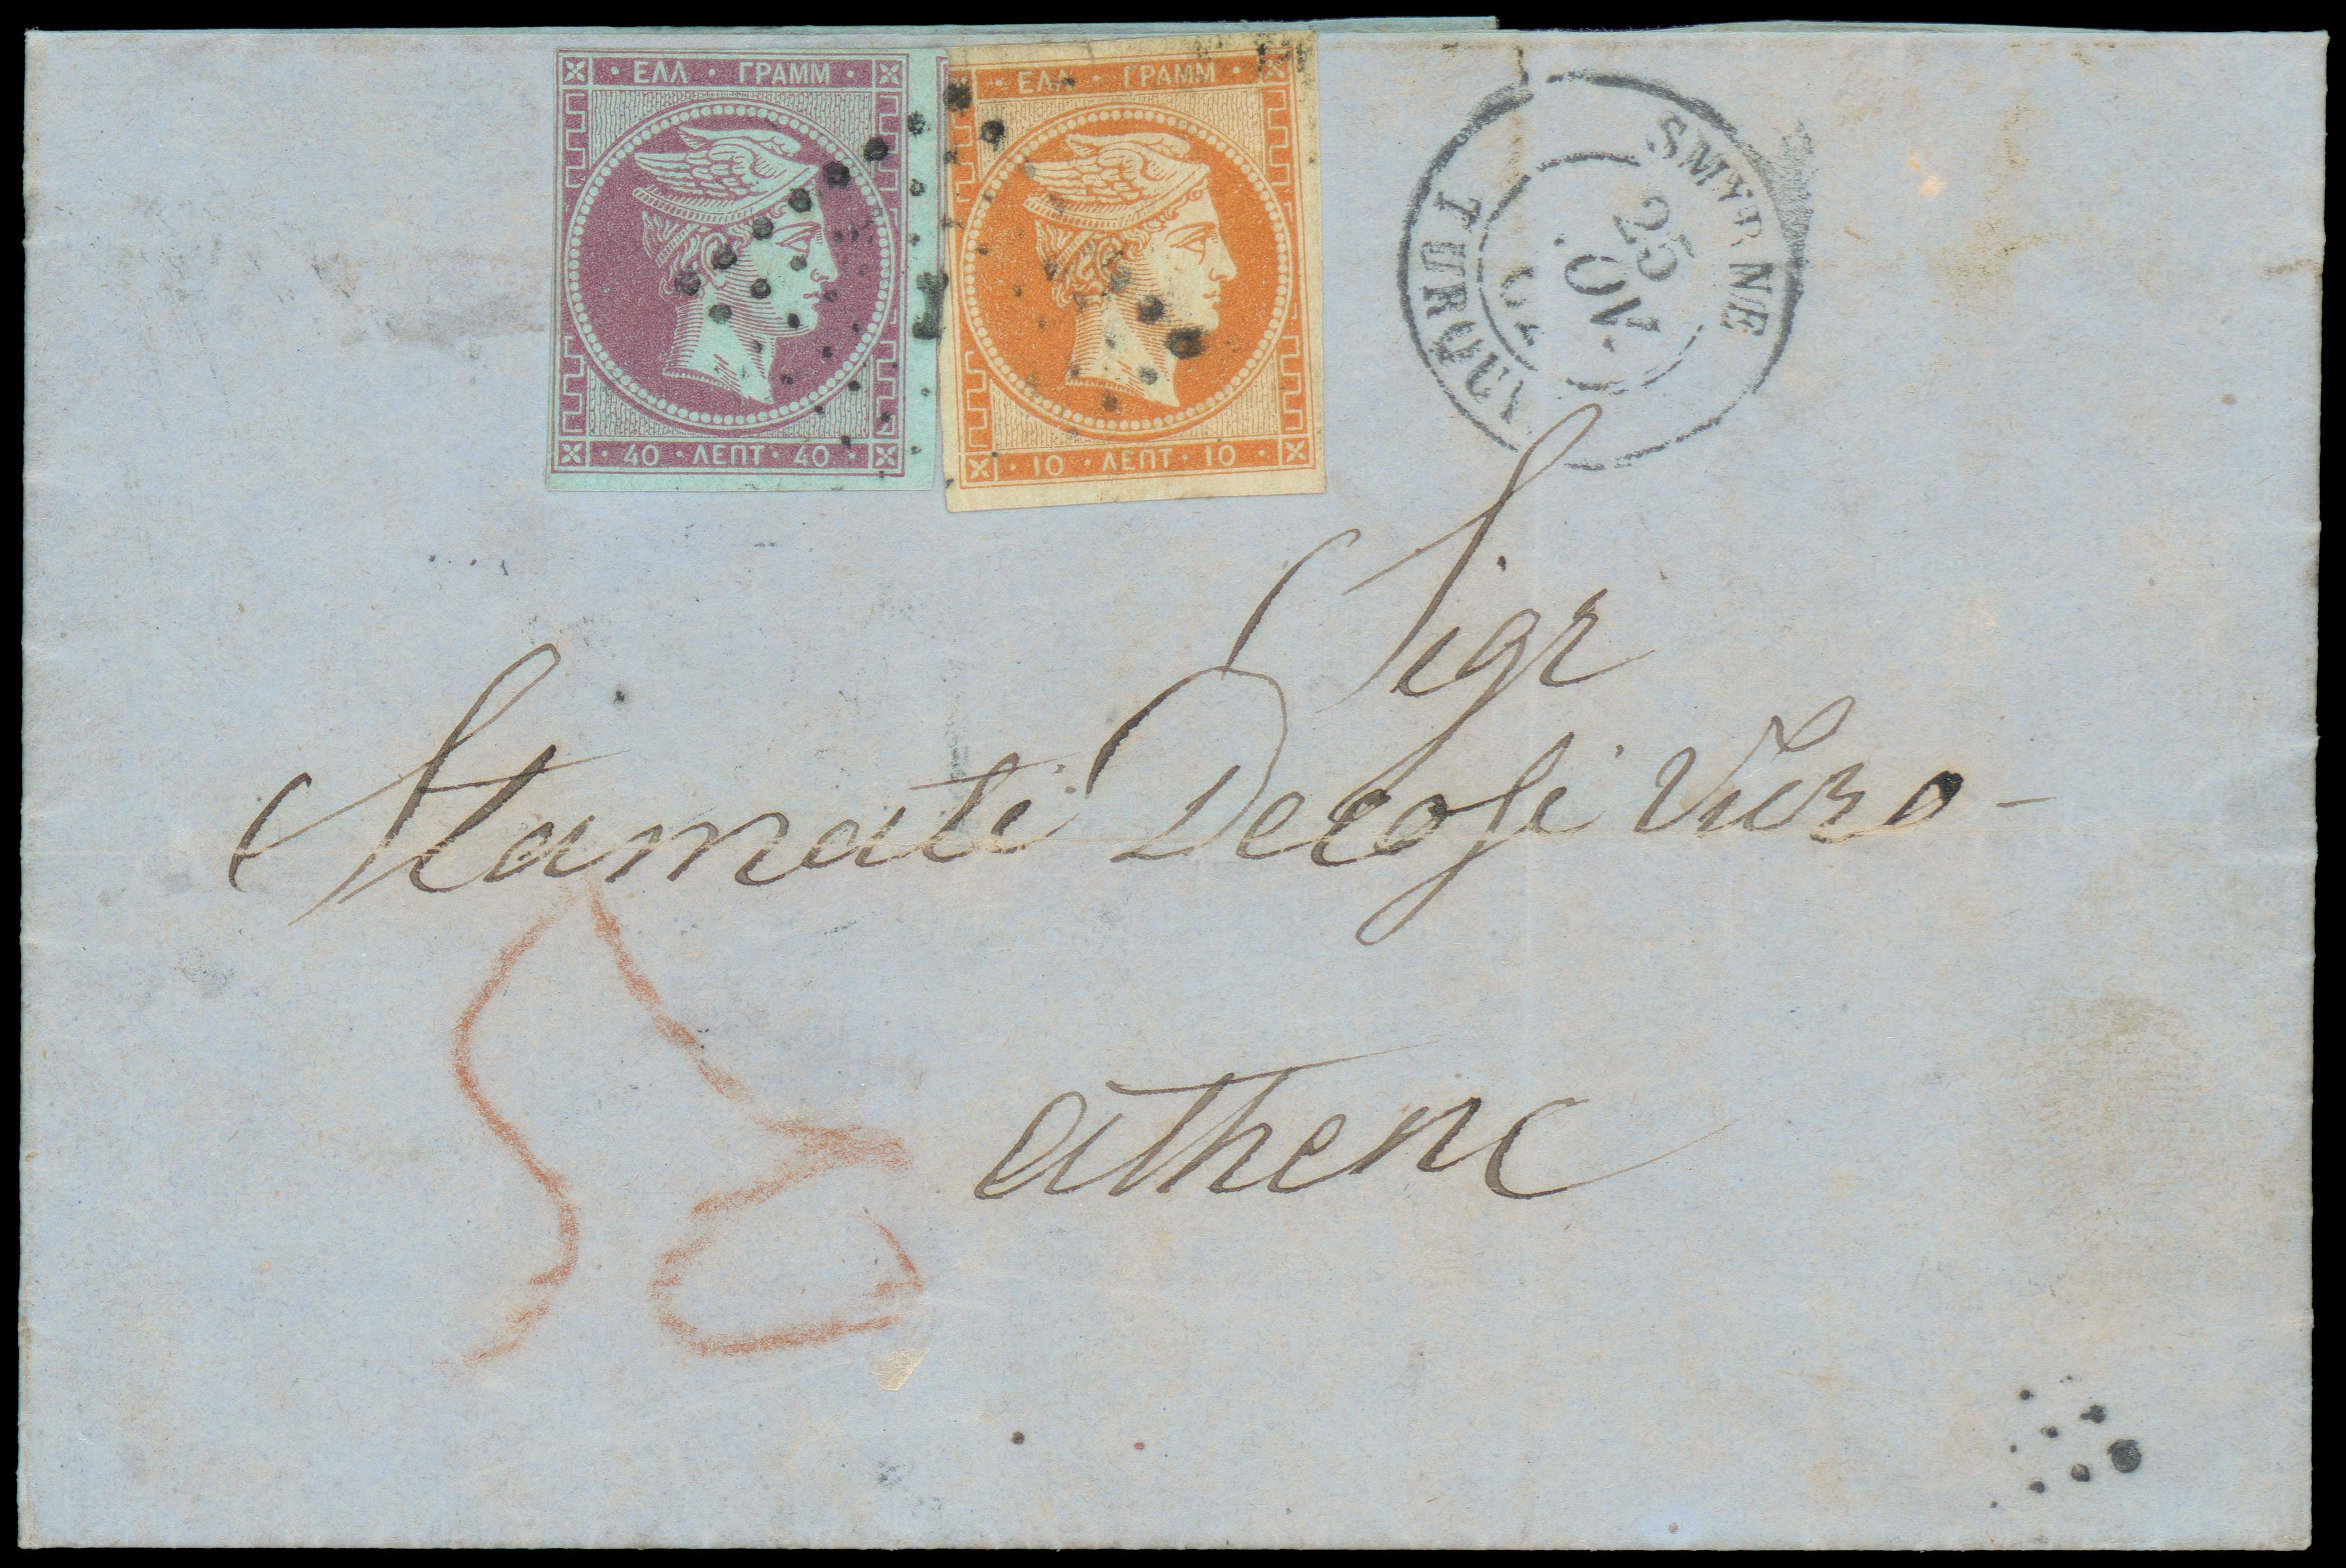 Lot 38 - -  LARGE HERMES HEAD 1861/1862 athens provisional printings -  A. Karamitsos Public Auction 645 General Stamp Sale